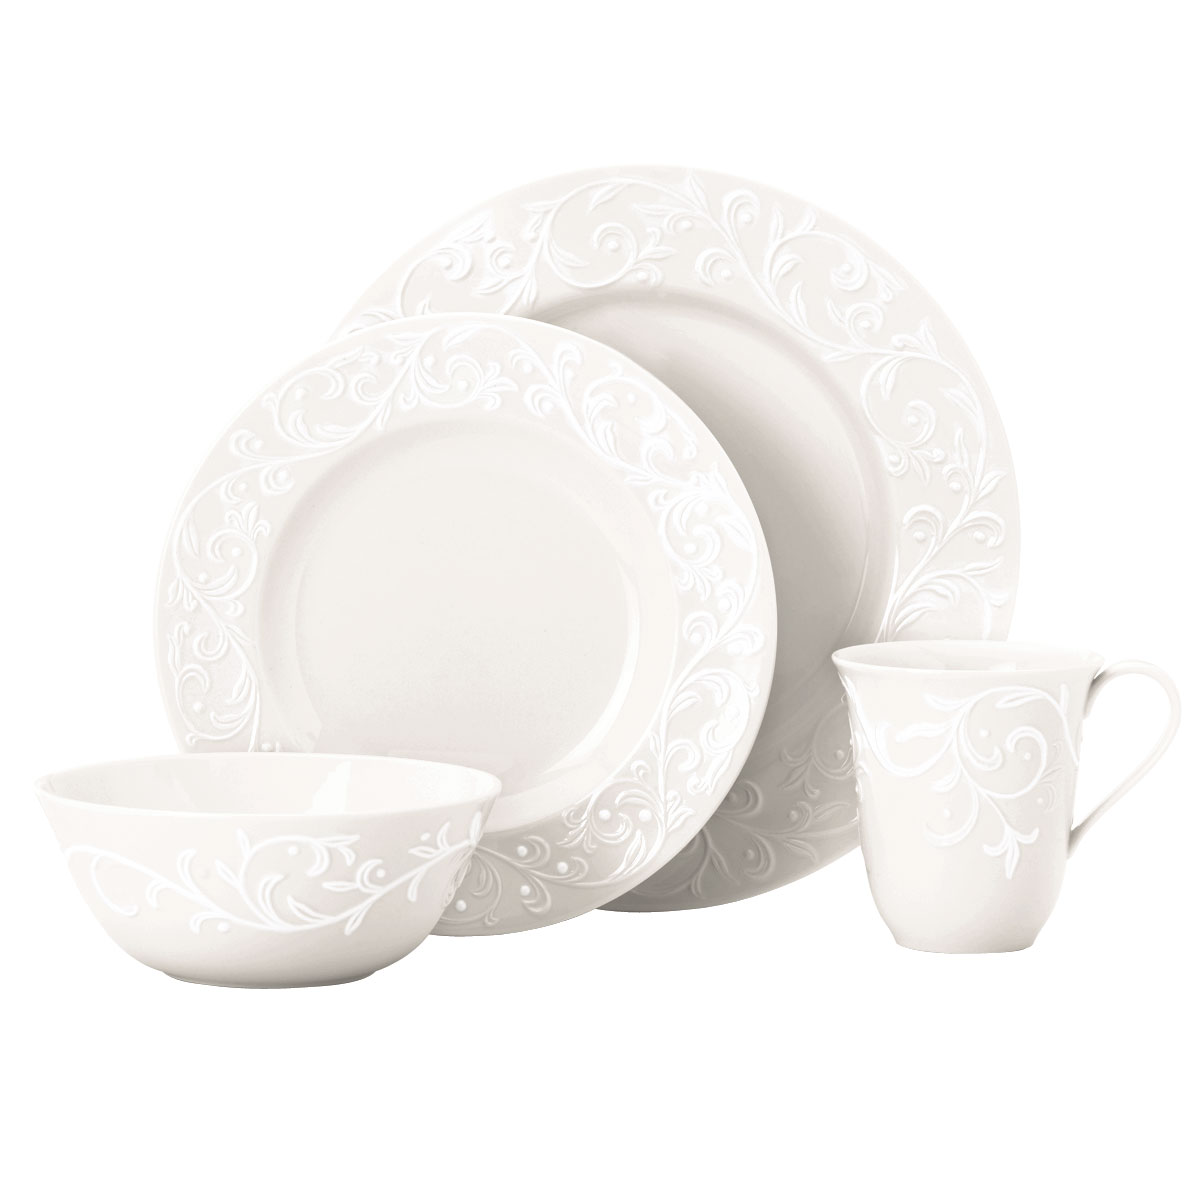 Lenox China Opal Innocence Carved, 4 Piece Place Setting